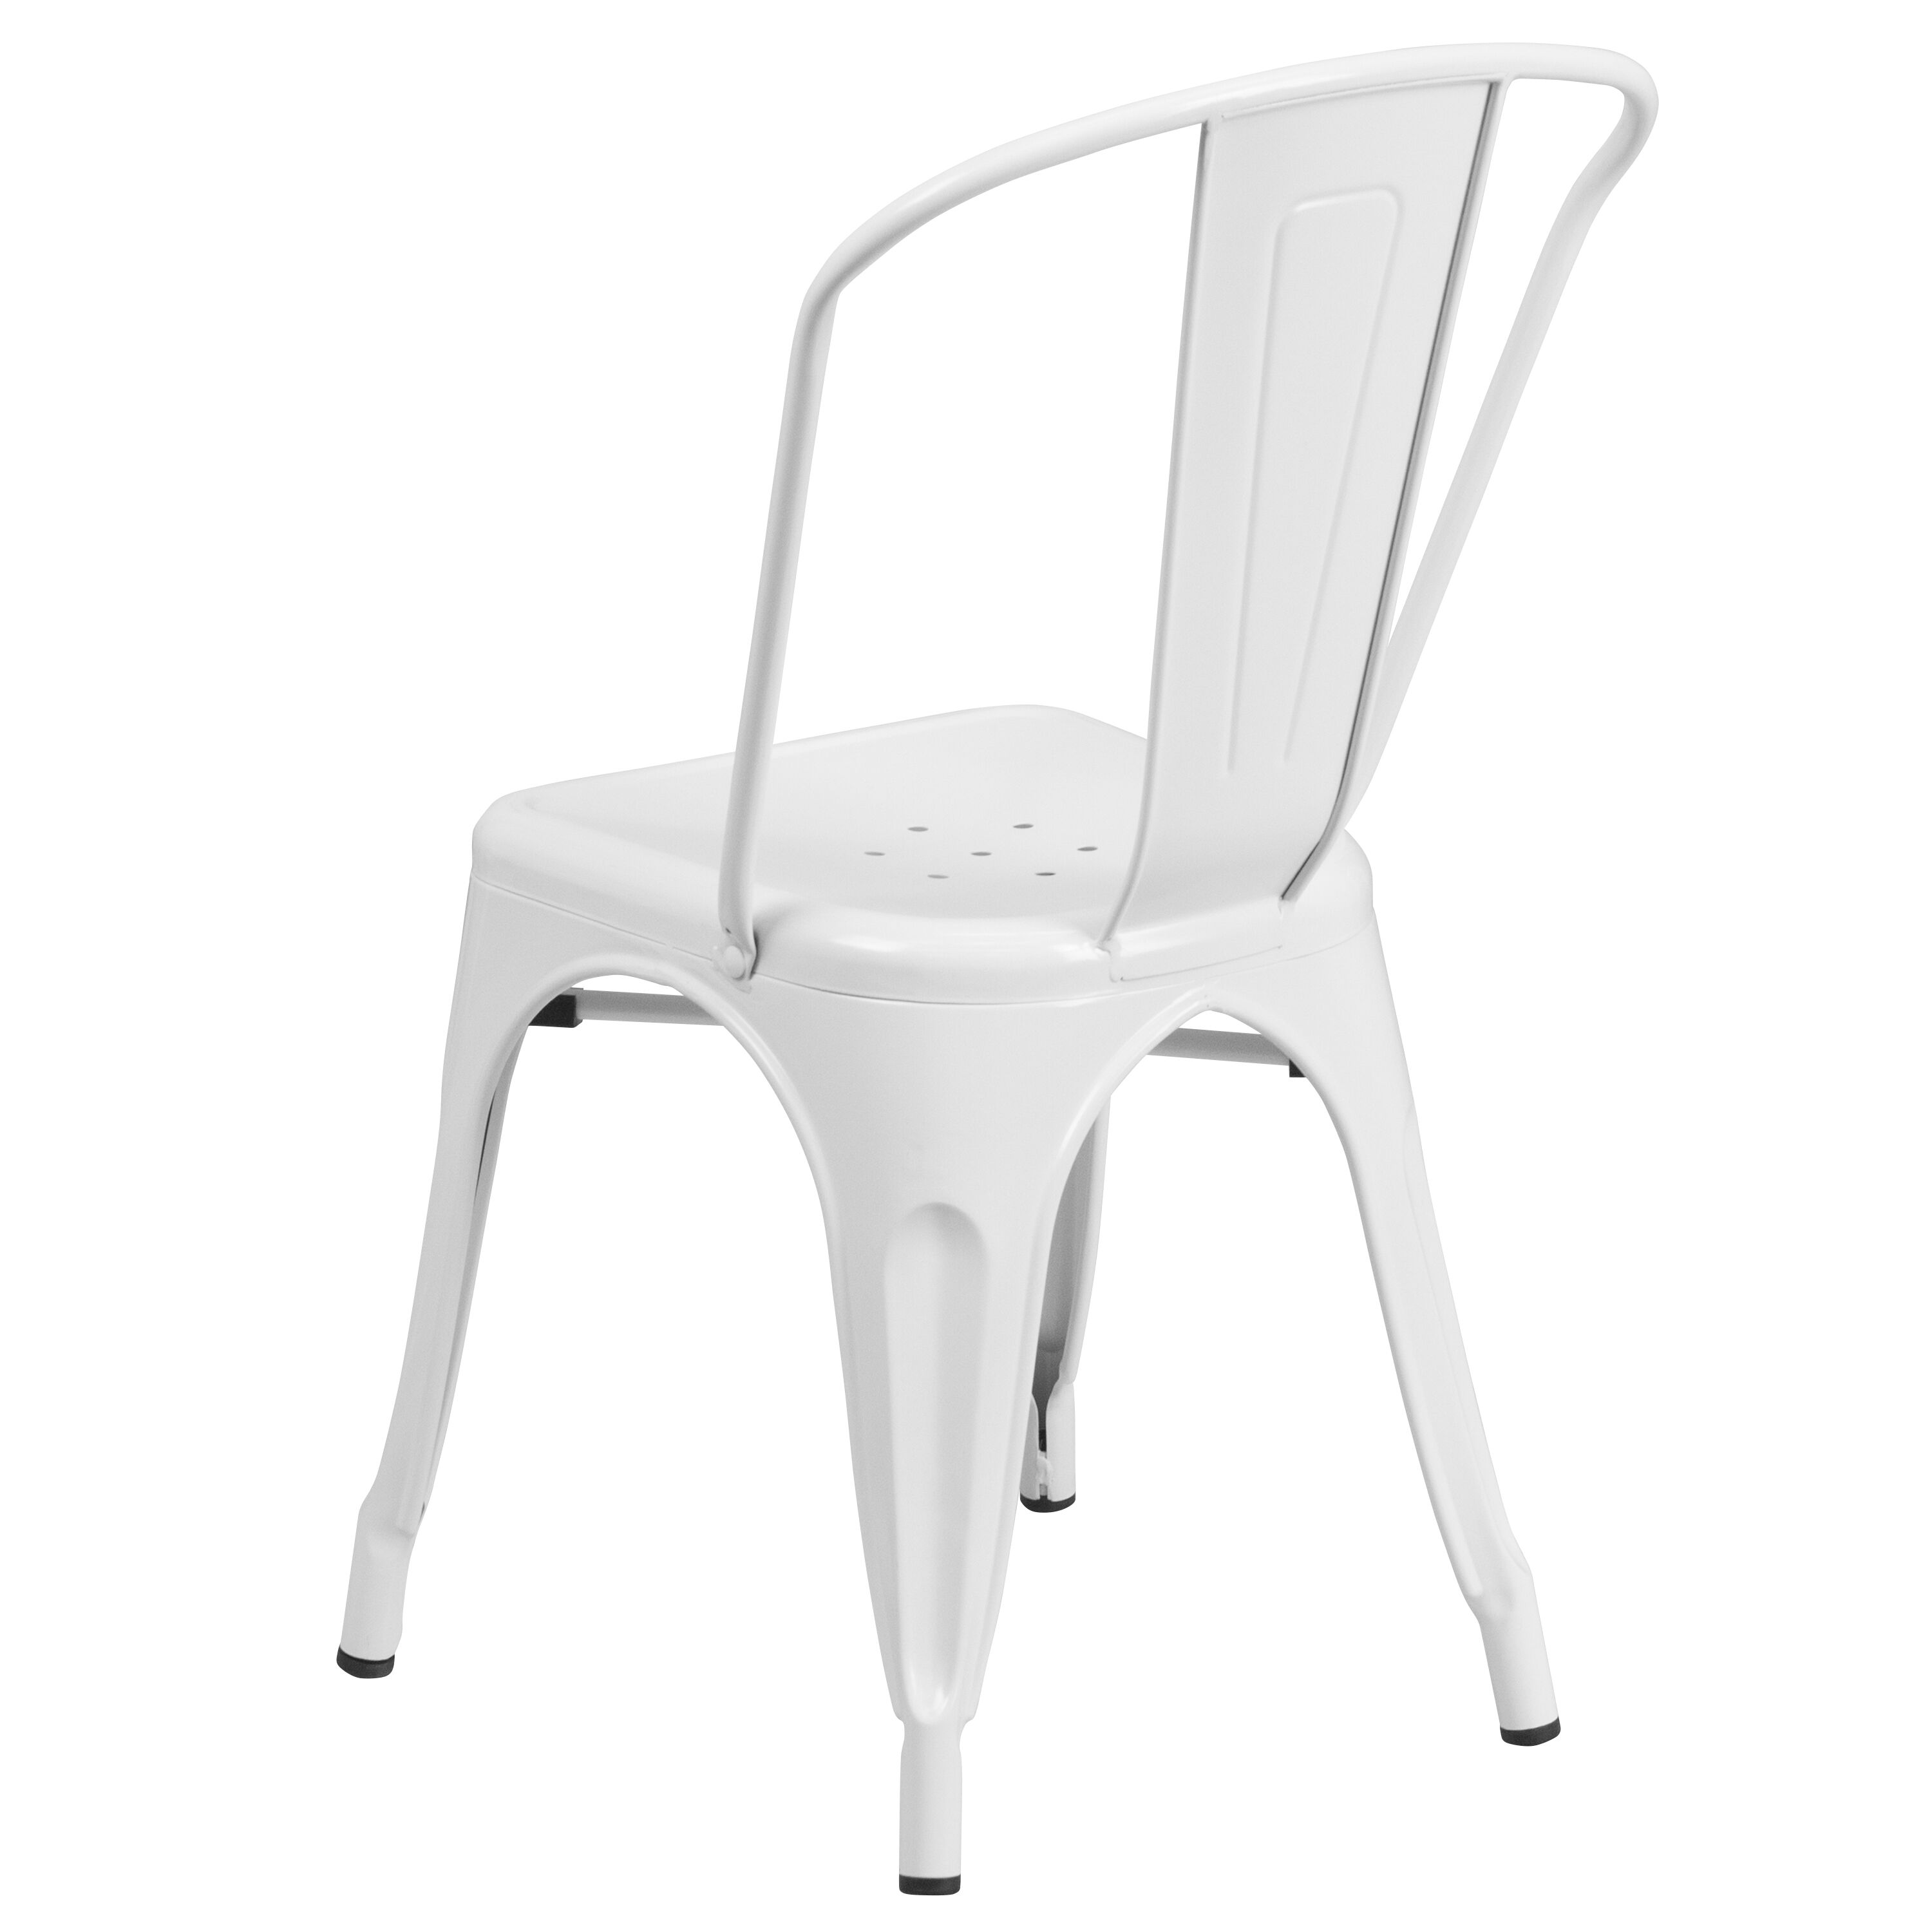 Our White Metal Indoor Outdoor Stackable Chair Is On Sale Now.